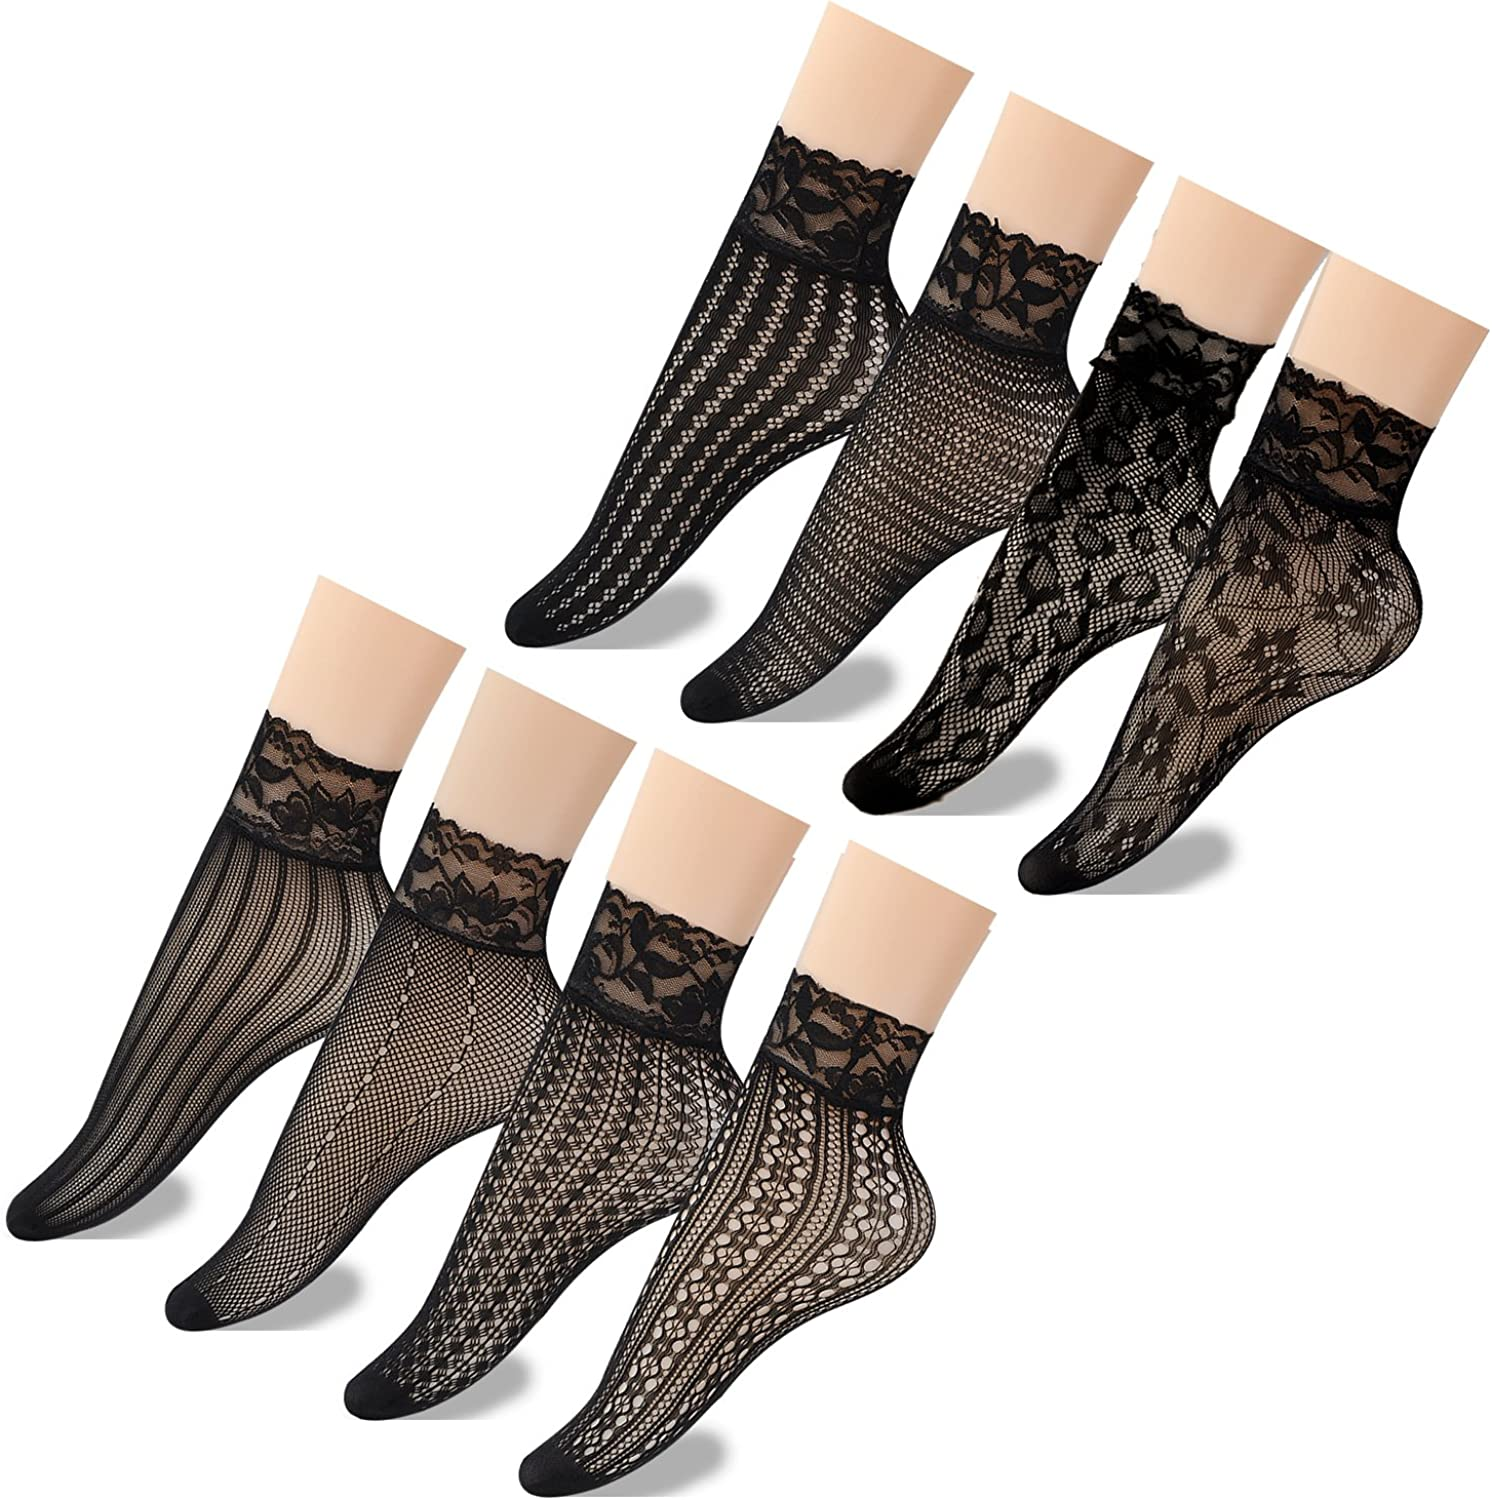 Epeius Women's Lace Fishnet Ankle Socks